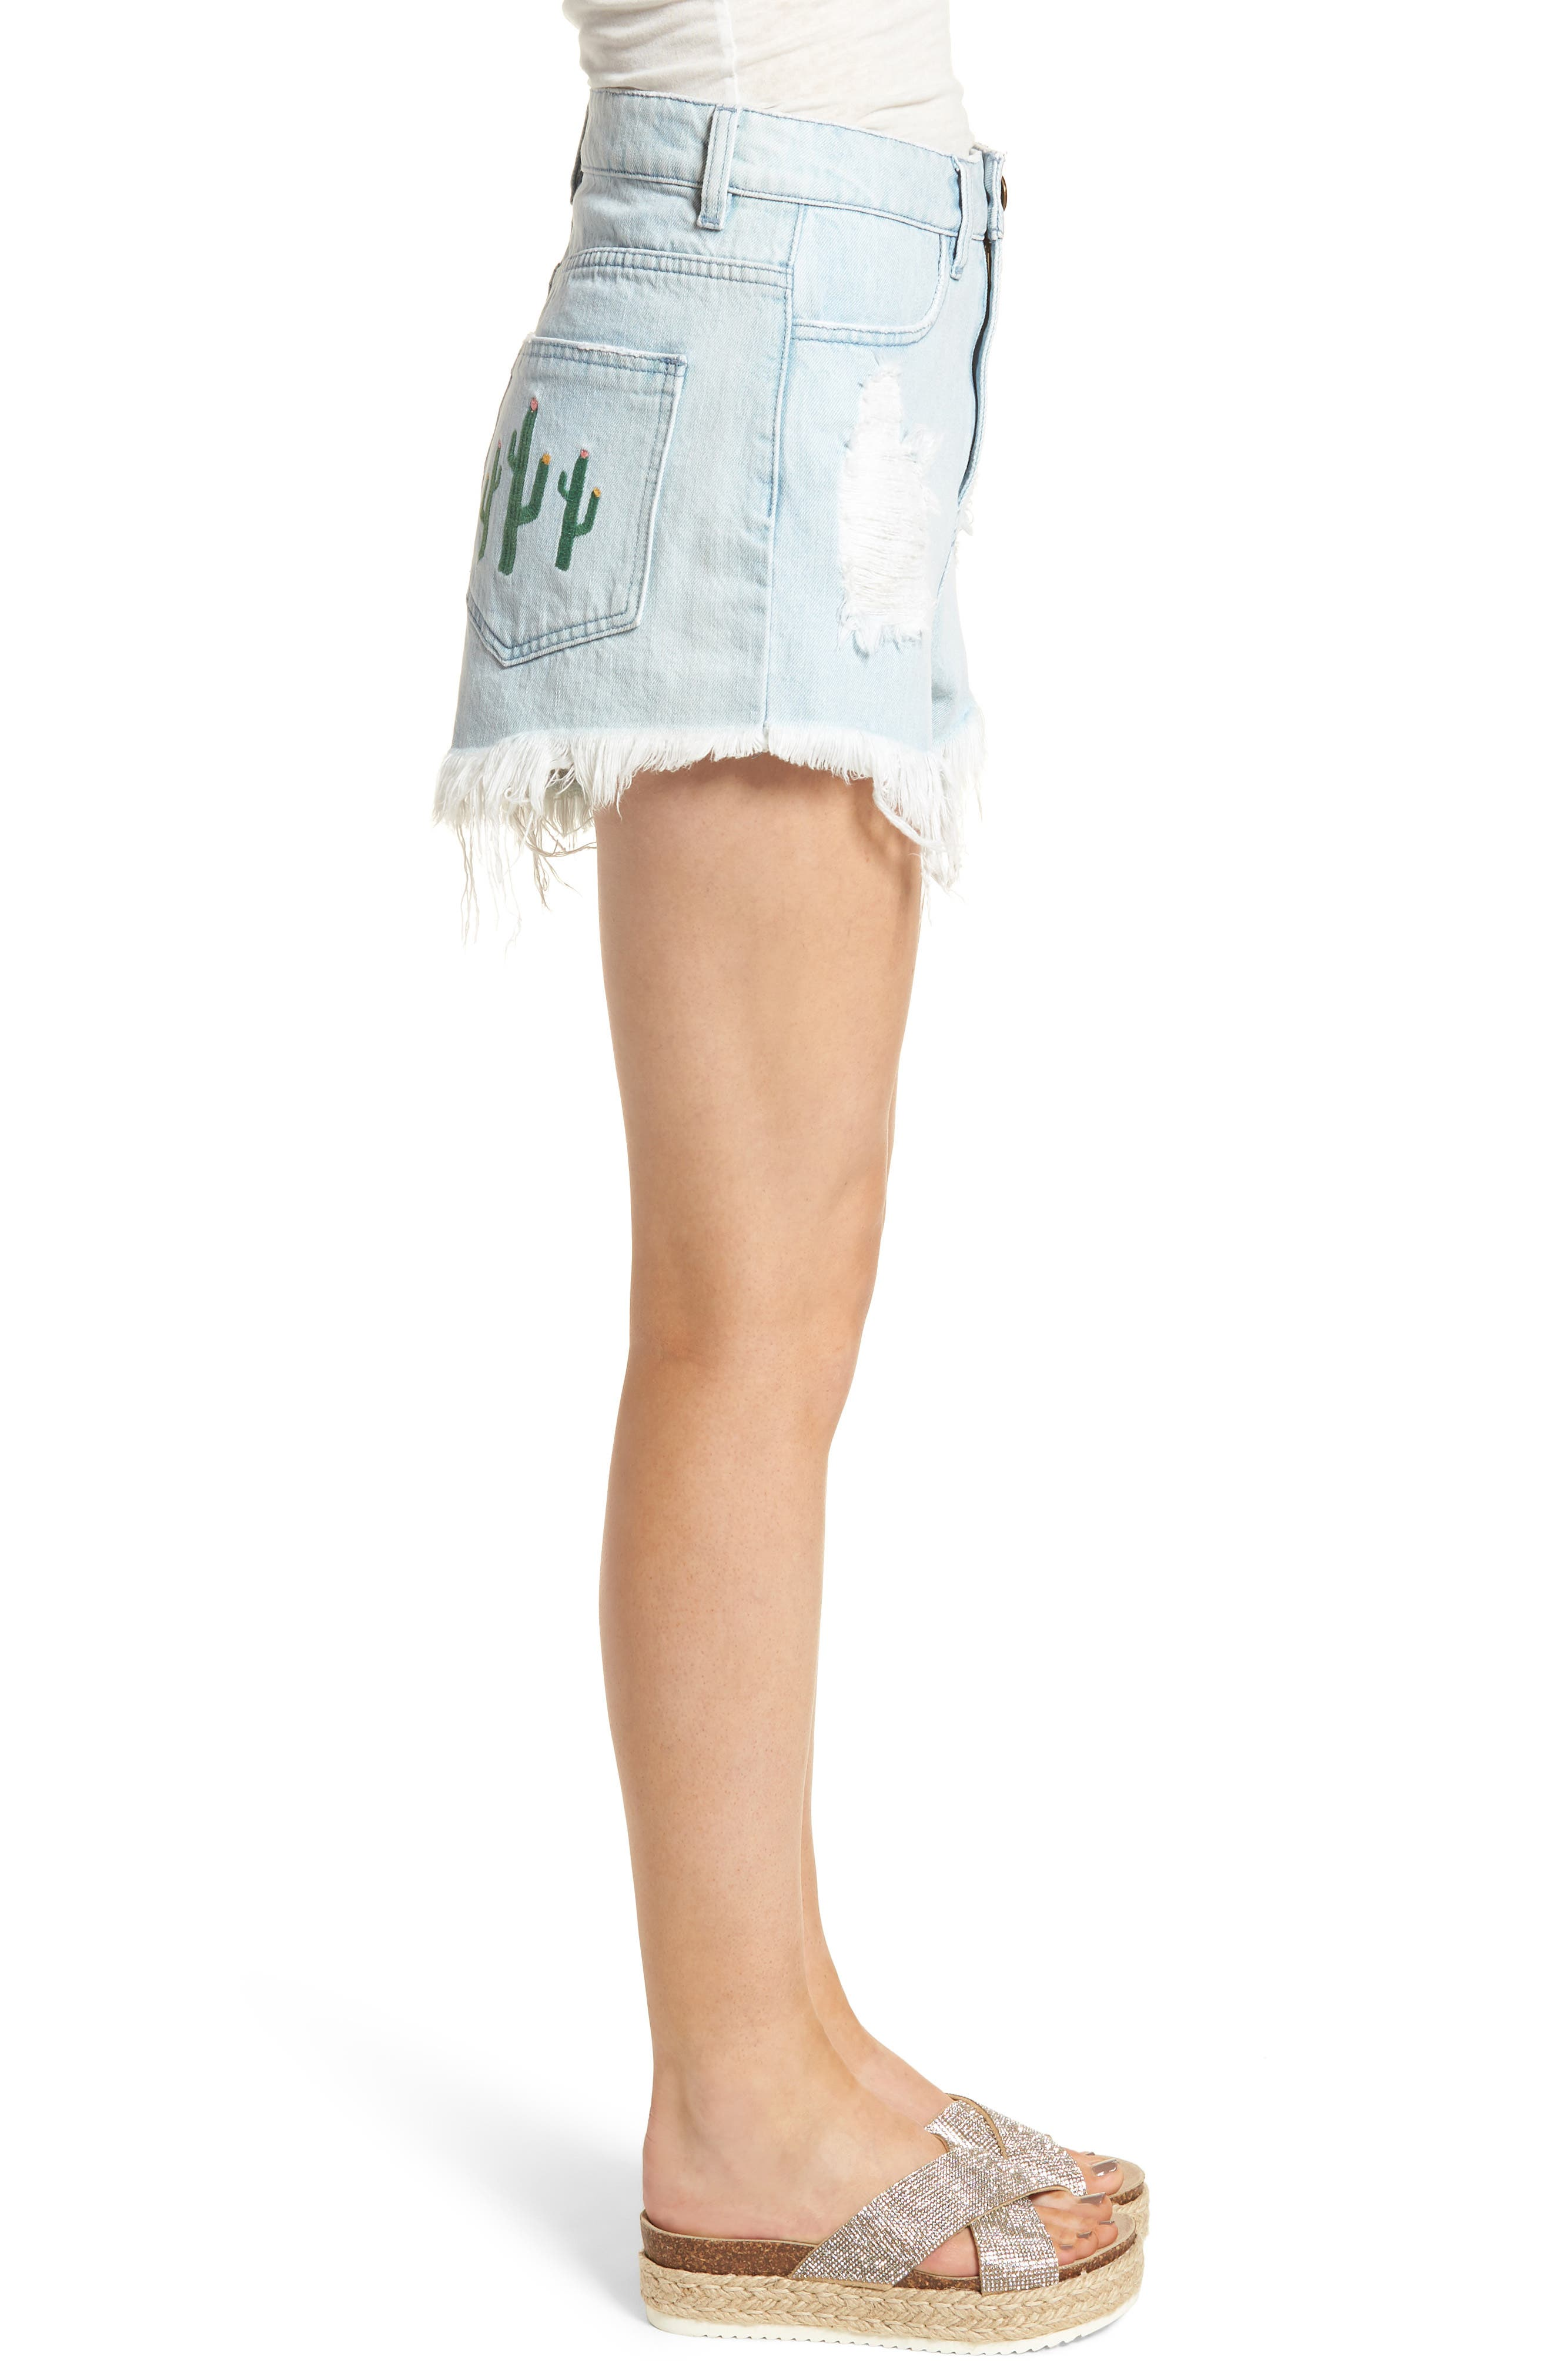 Wyoming High Waist Cutoff Denim Shorts,                             Alternate thumbnail 3, color,                             Whitewater With Cactus